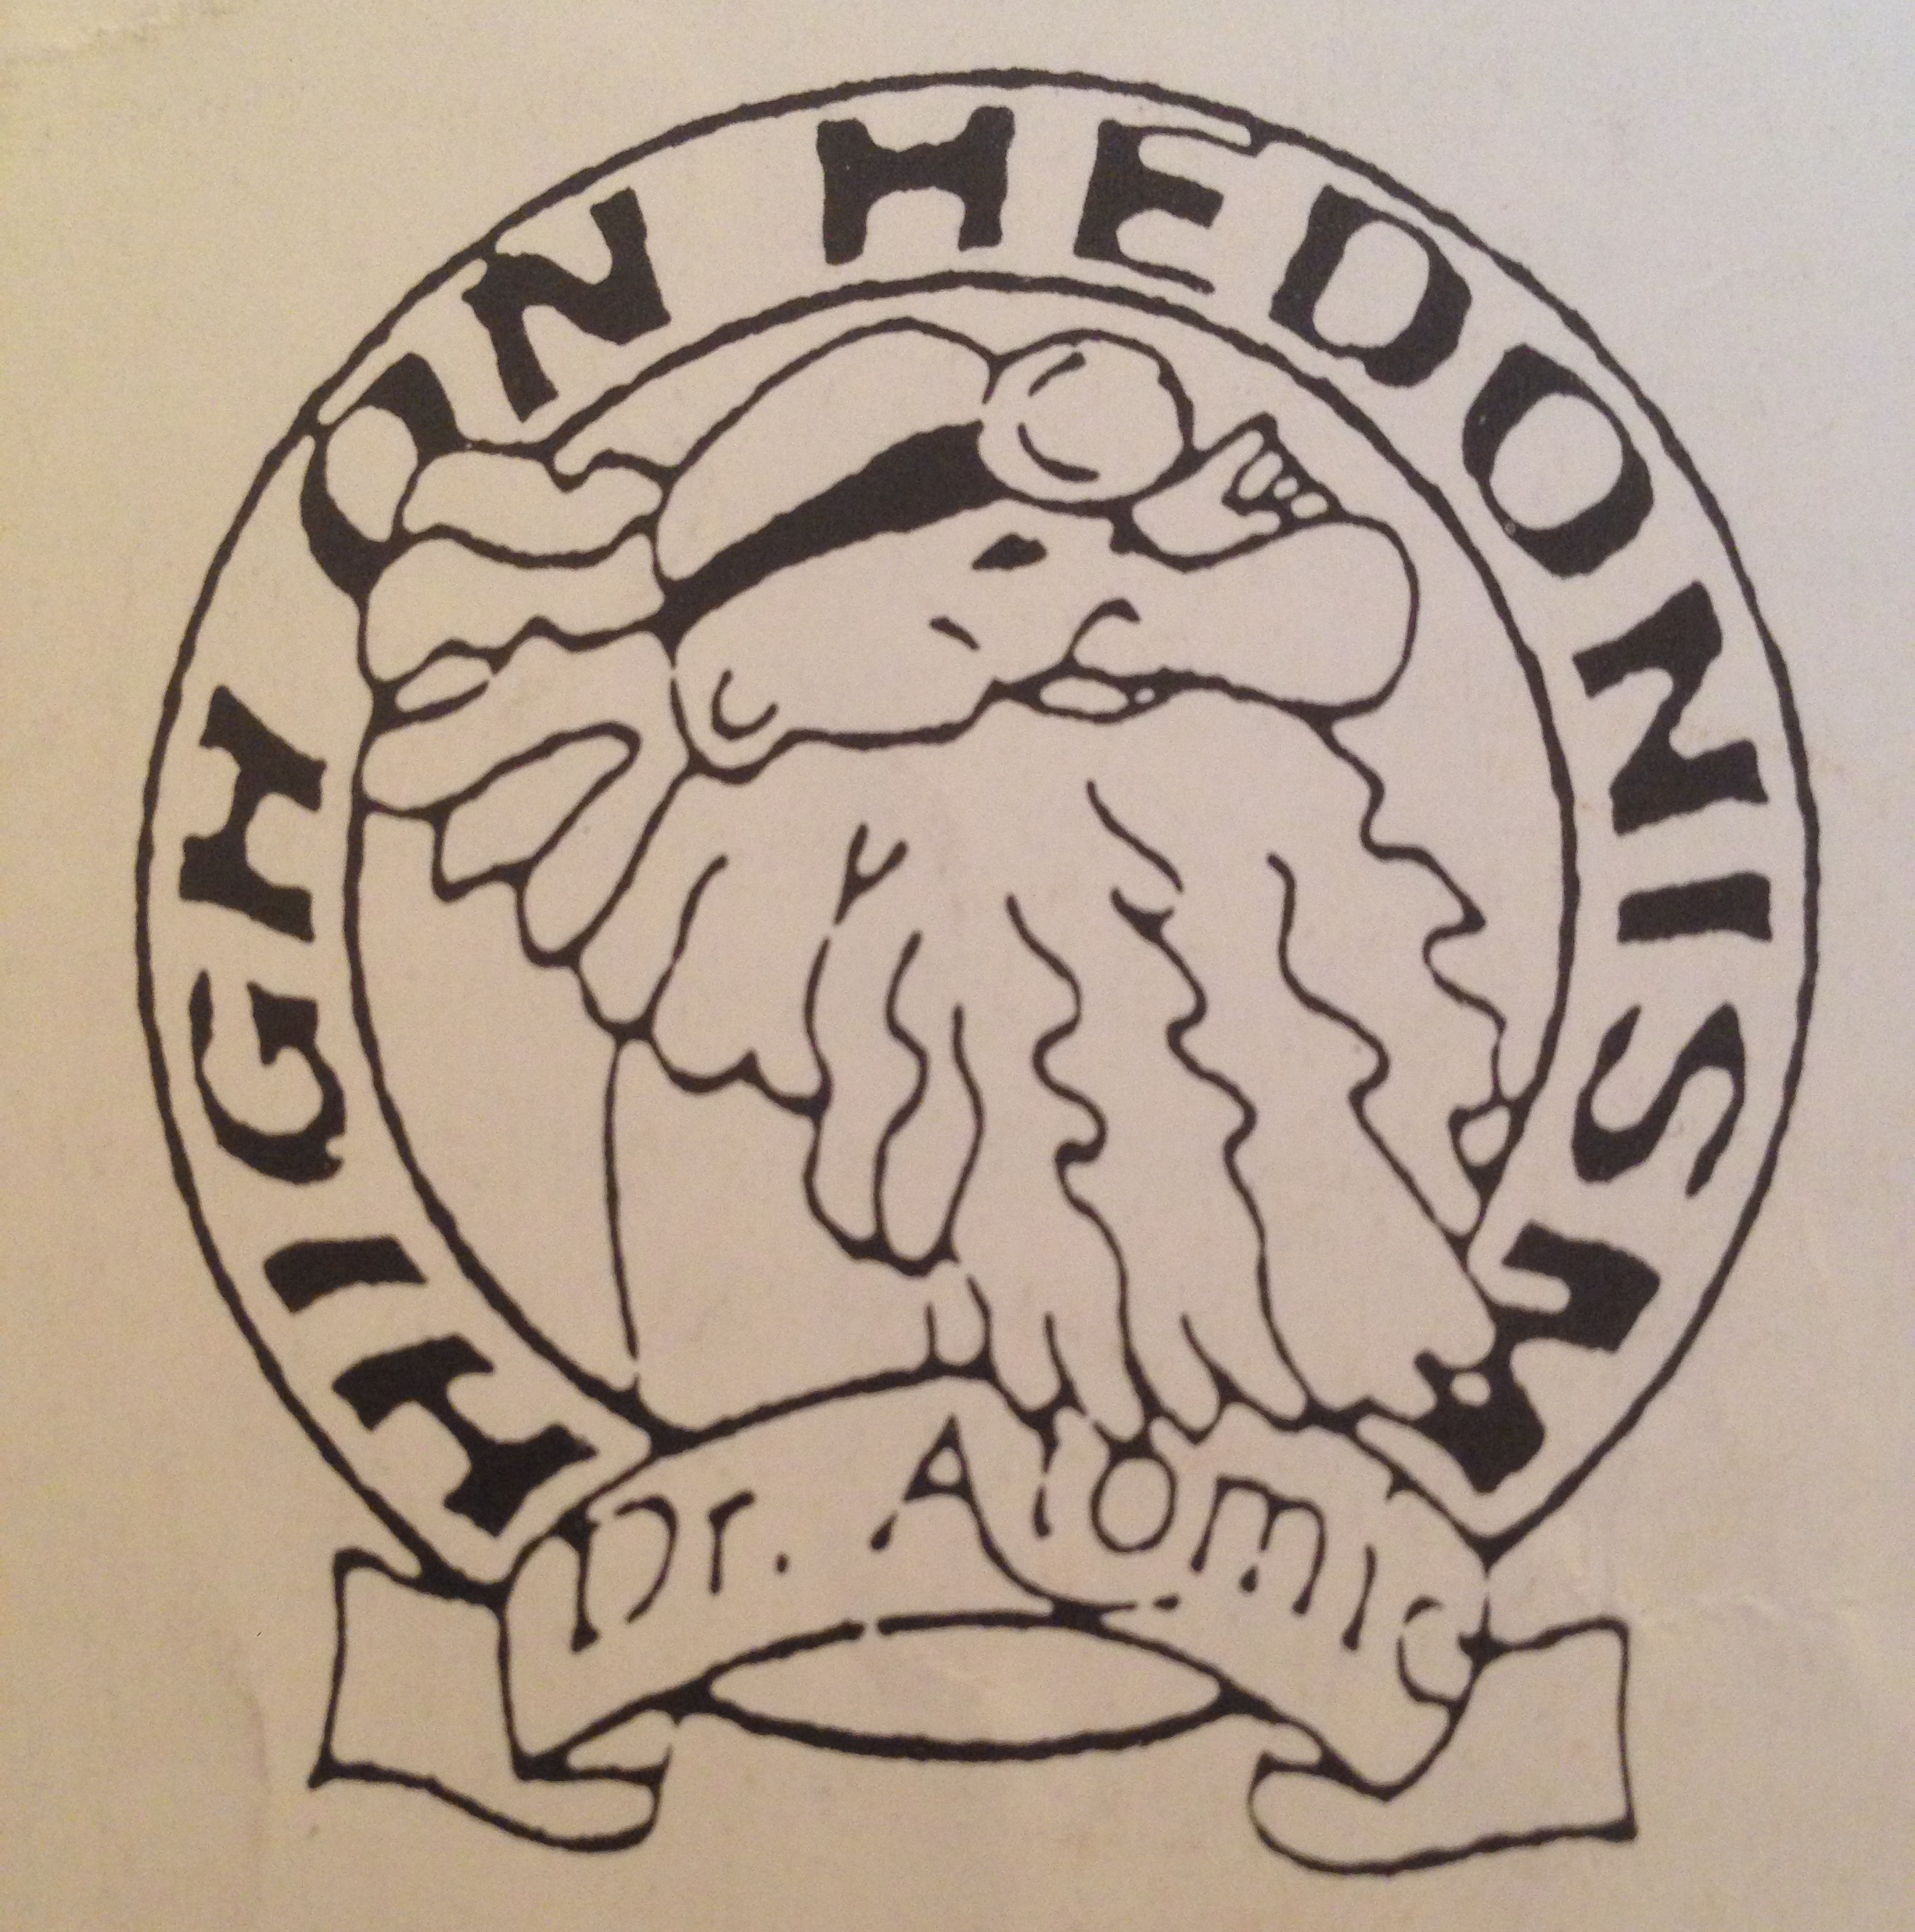 Music: A pictorial and oral history of the twisted, rave-tinted art of Dr. Atomic – and other 1990s Brighton promoters – who were high on hedonism